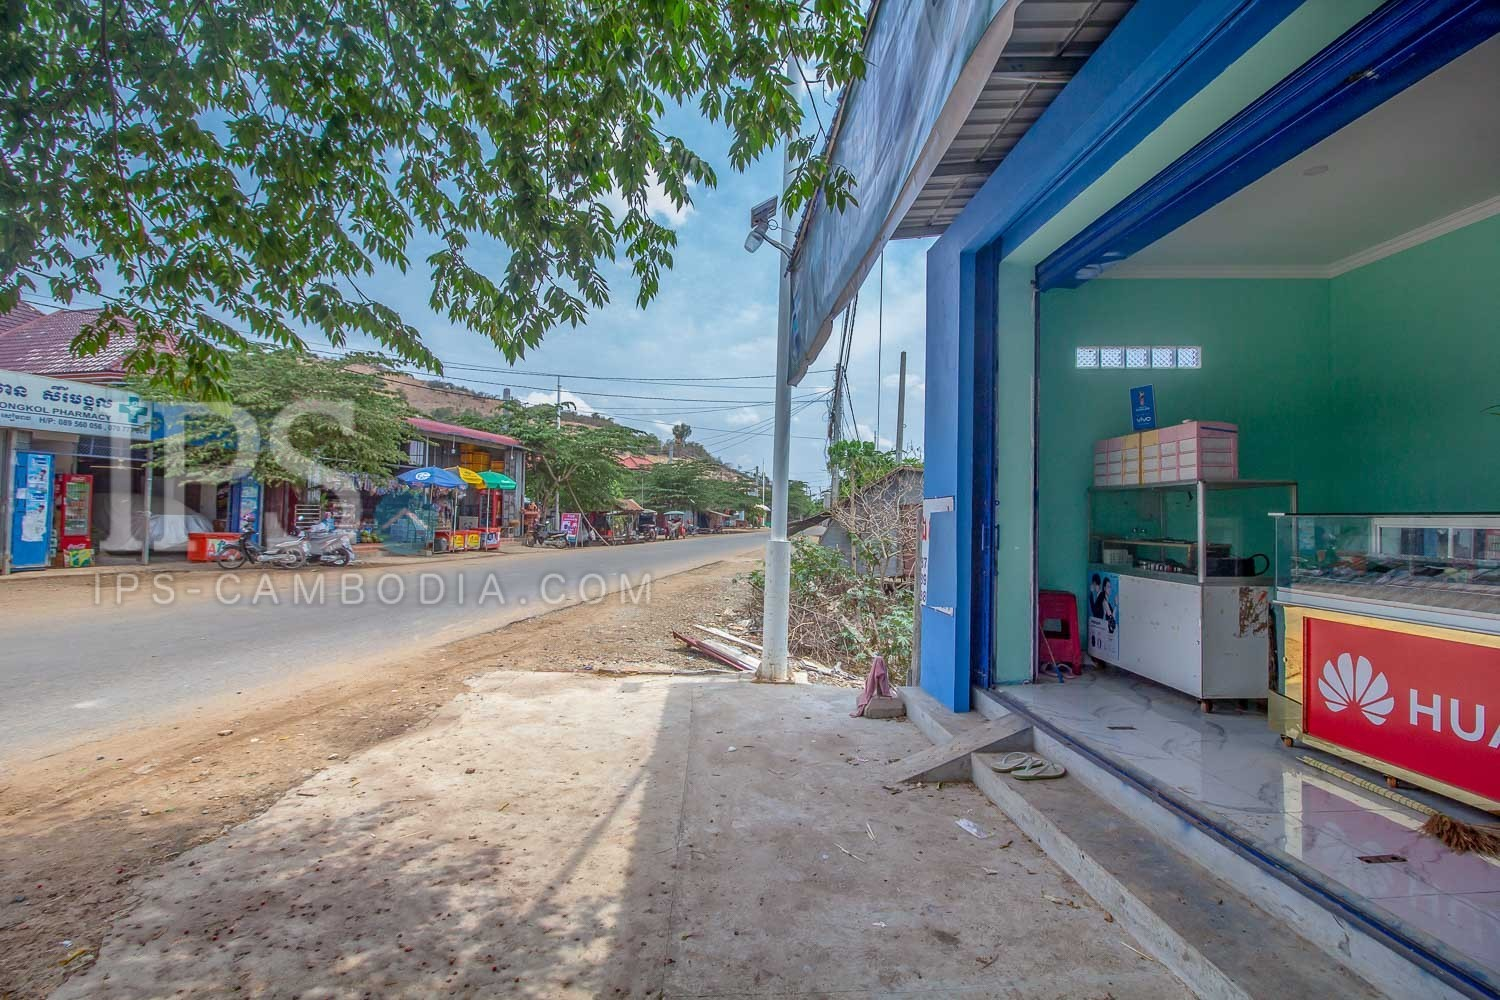 1 Bedroom House For Sale - Chong Khneas, Siem Reap